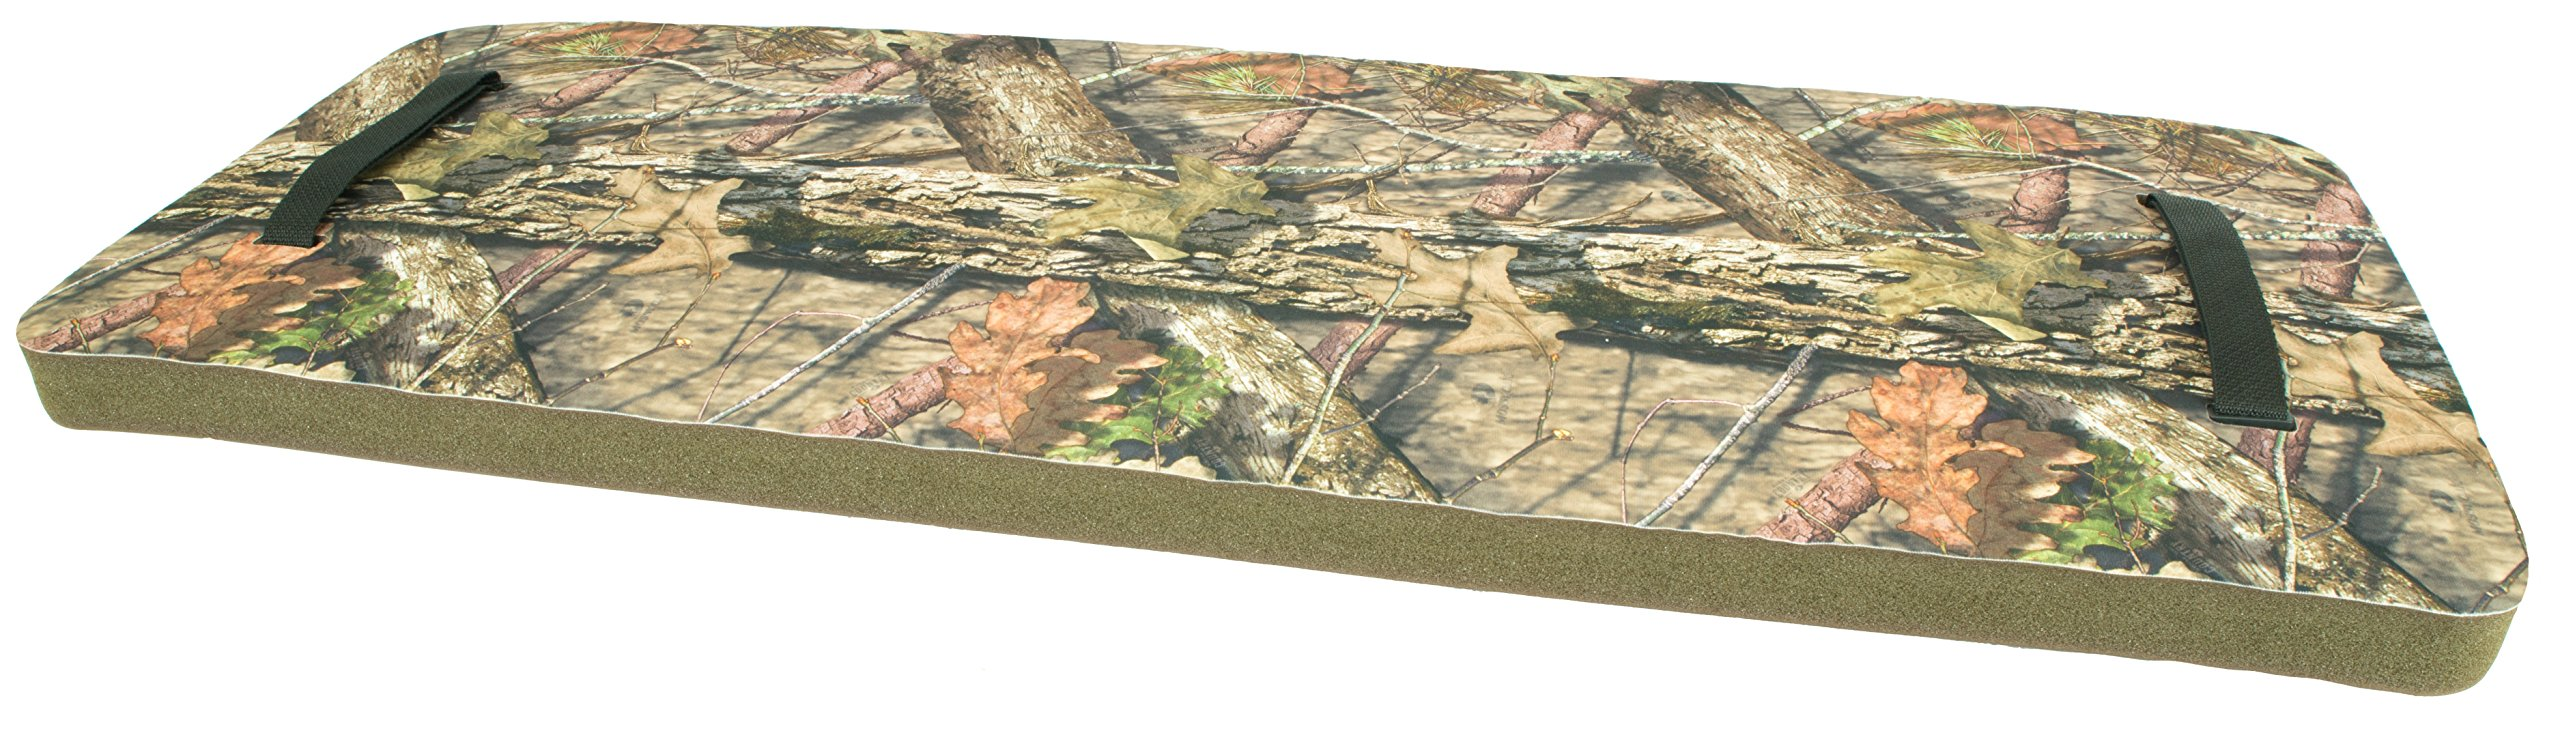 Northeast Products Tree Stand Replacement Seat, Mossy Oak, 38'' x 14'' x 1.5''